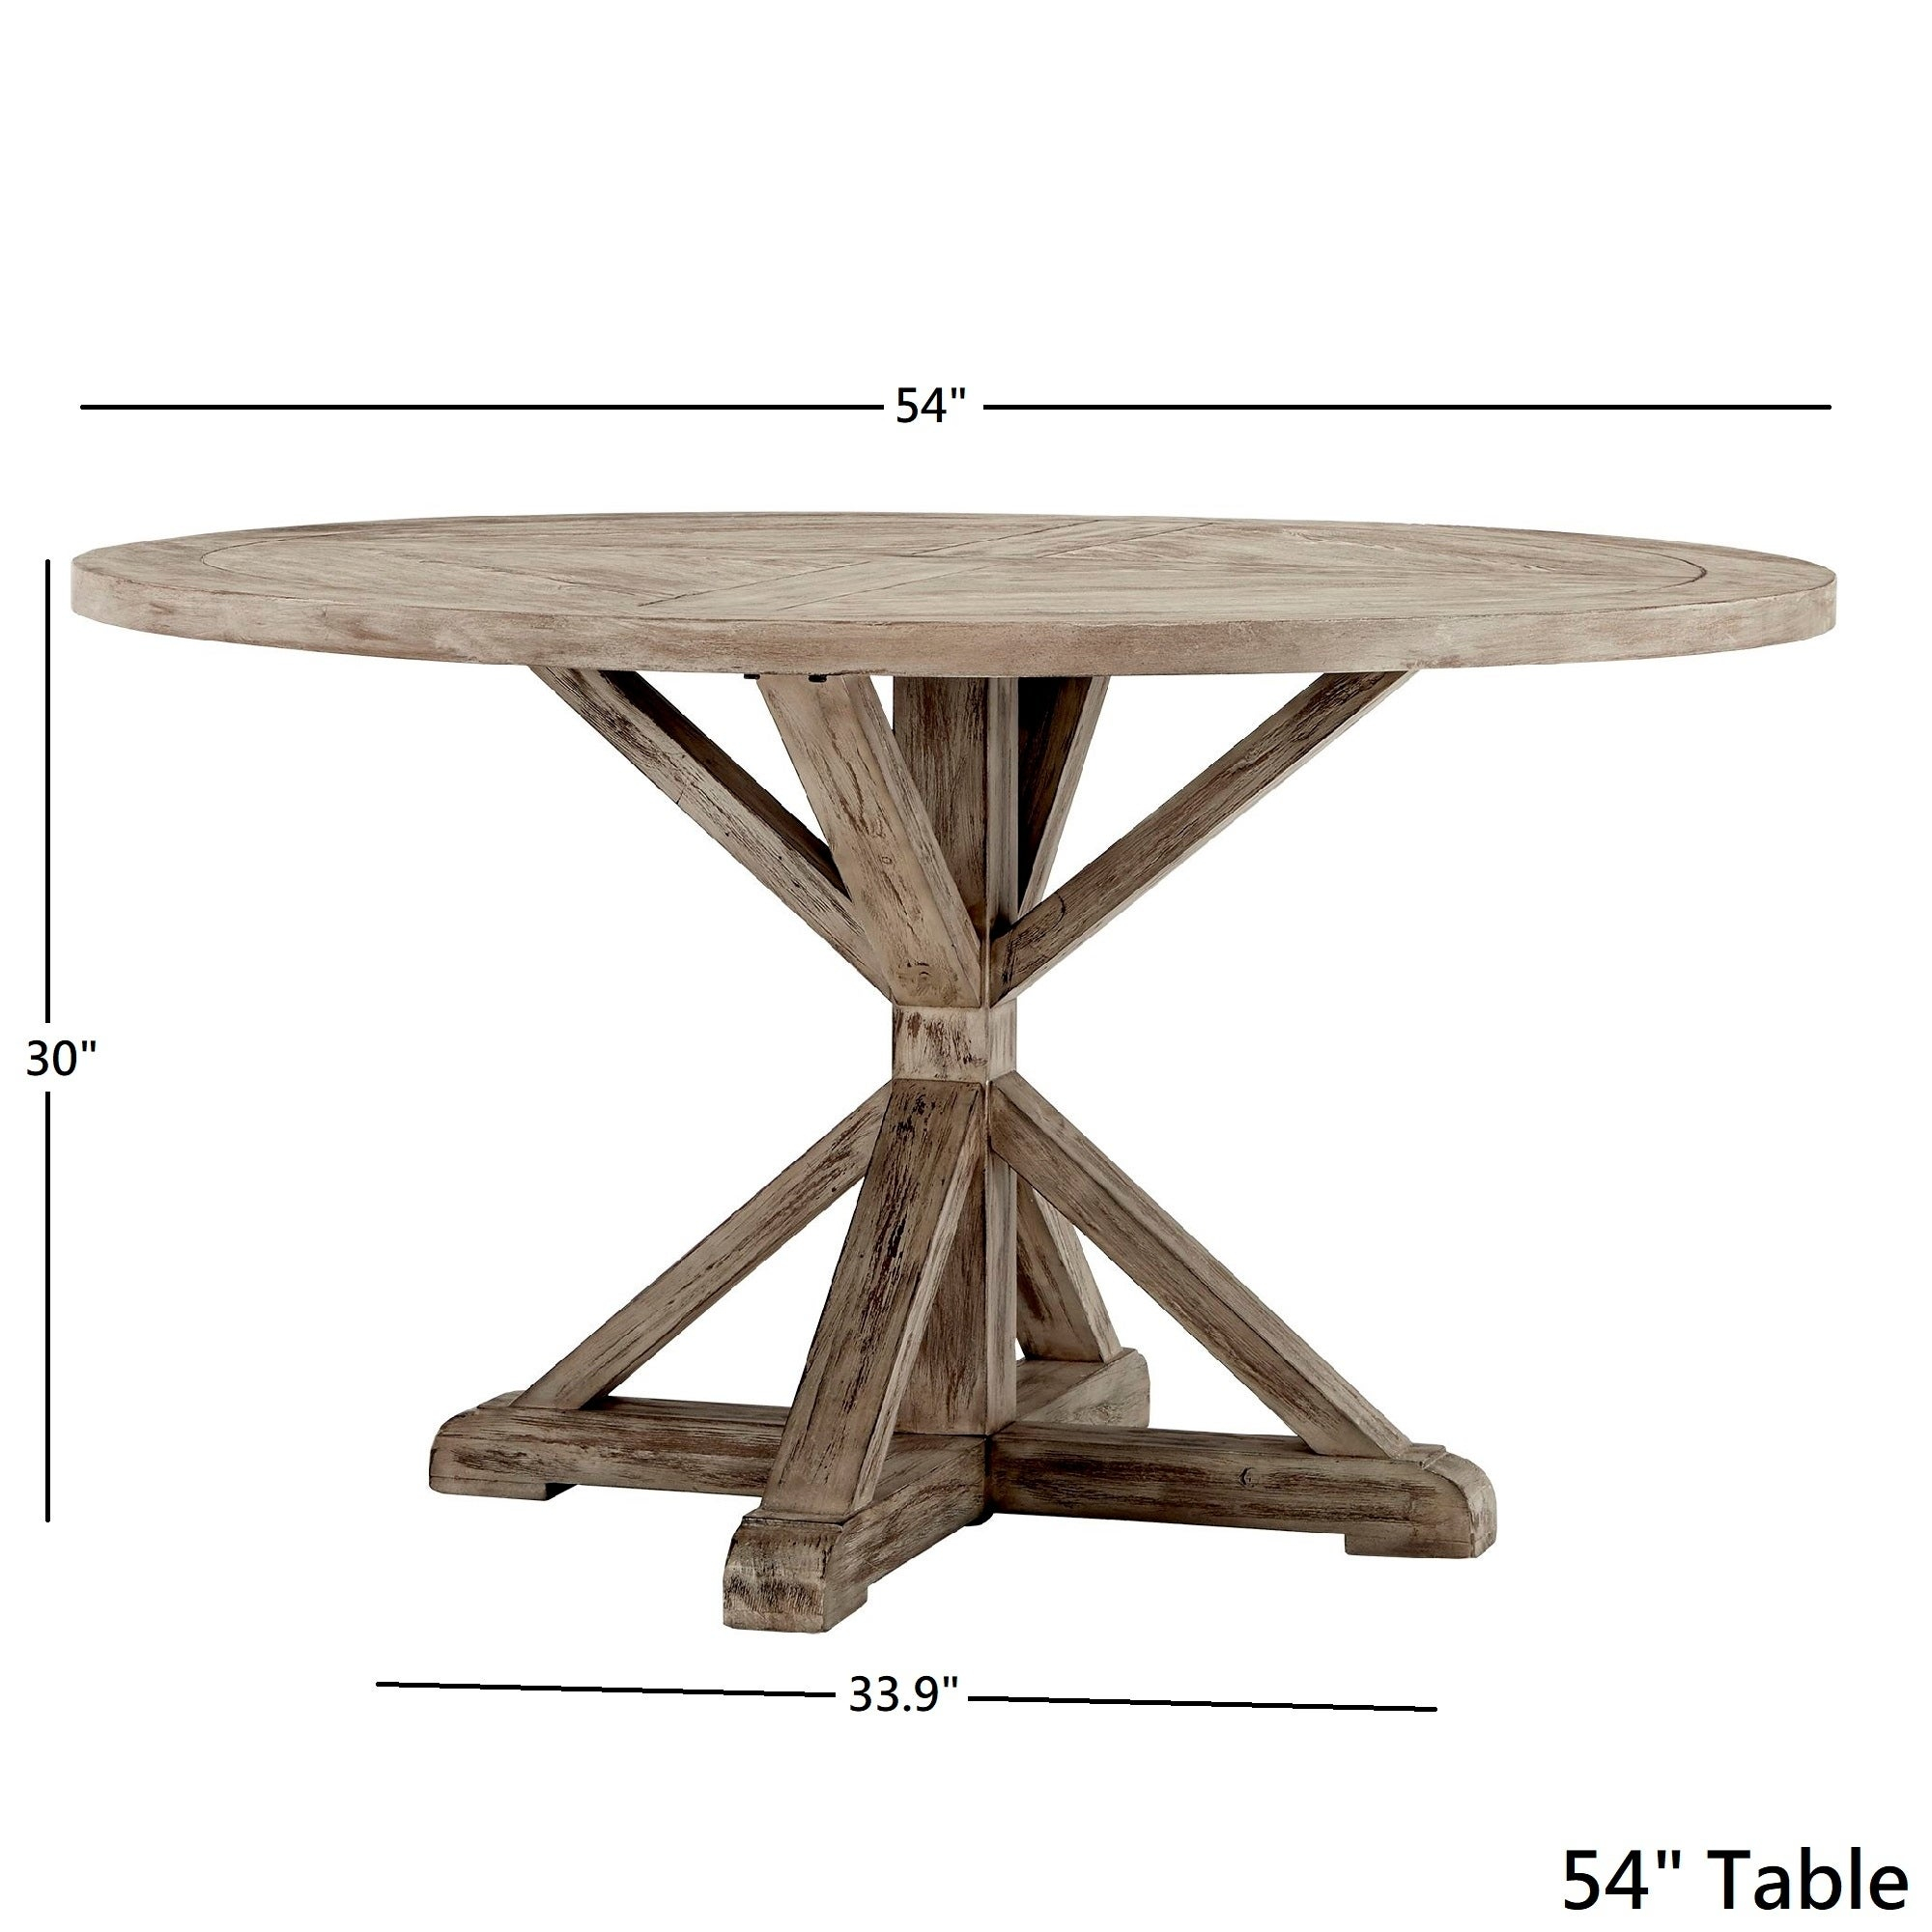 Benchwright Antique Grey Oak Round Dining Tableinspire Q Artisan In Best And Newest Benchwright Round Pedestal Dining Tables (View 11 of 25)